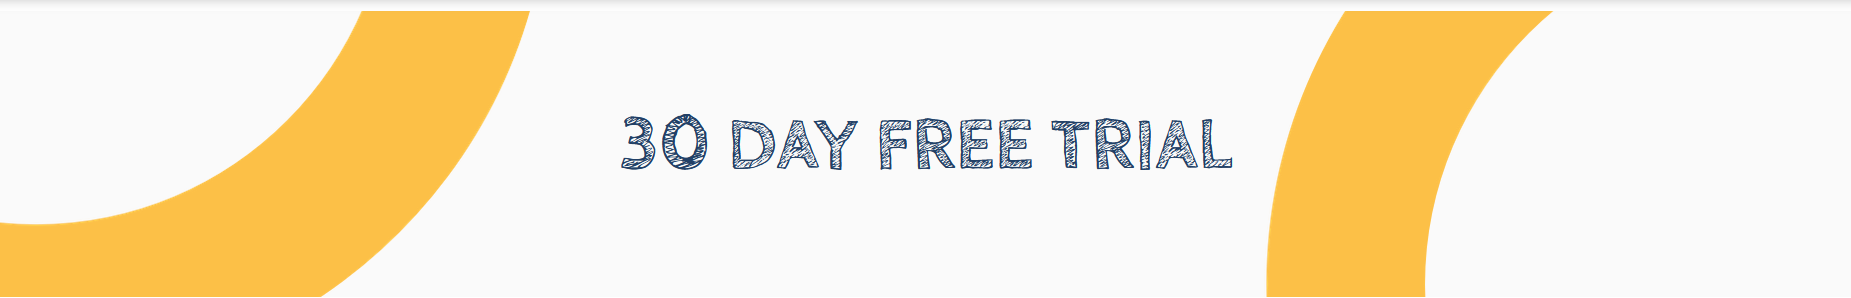 30 day free trial image